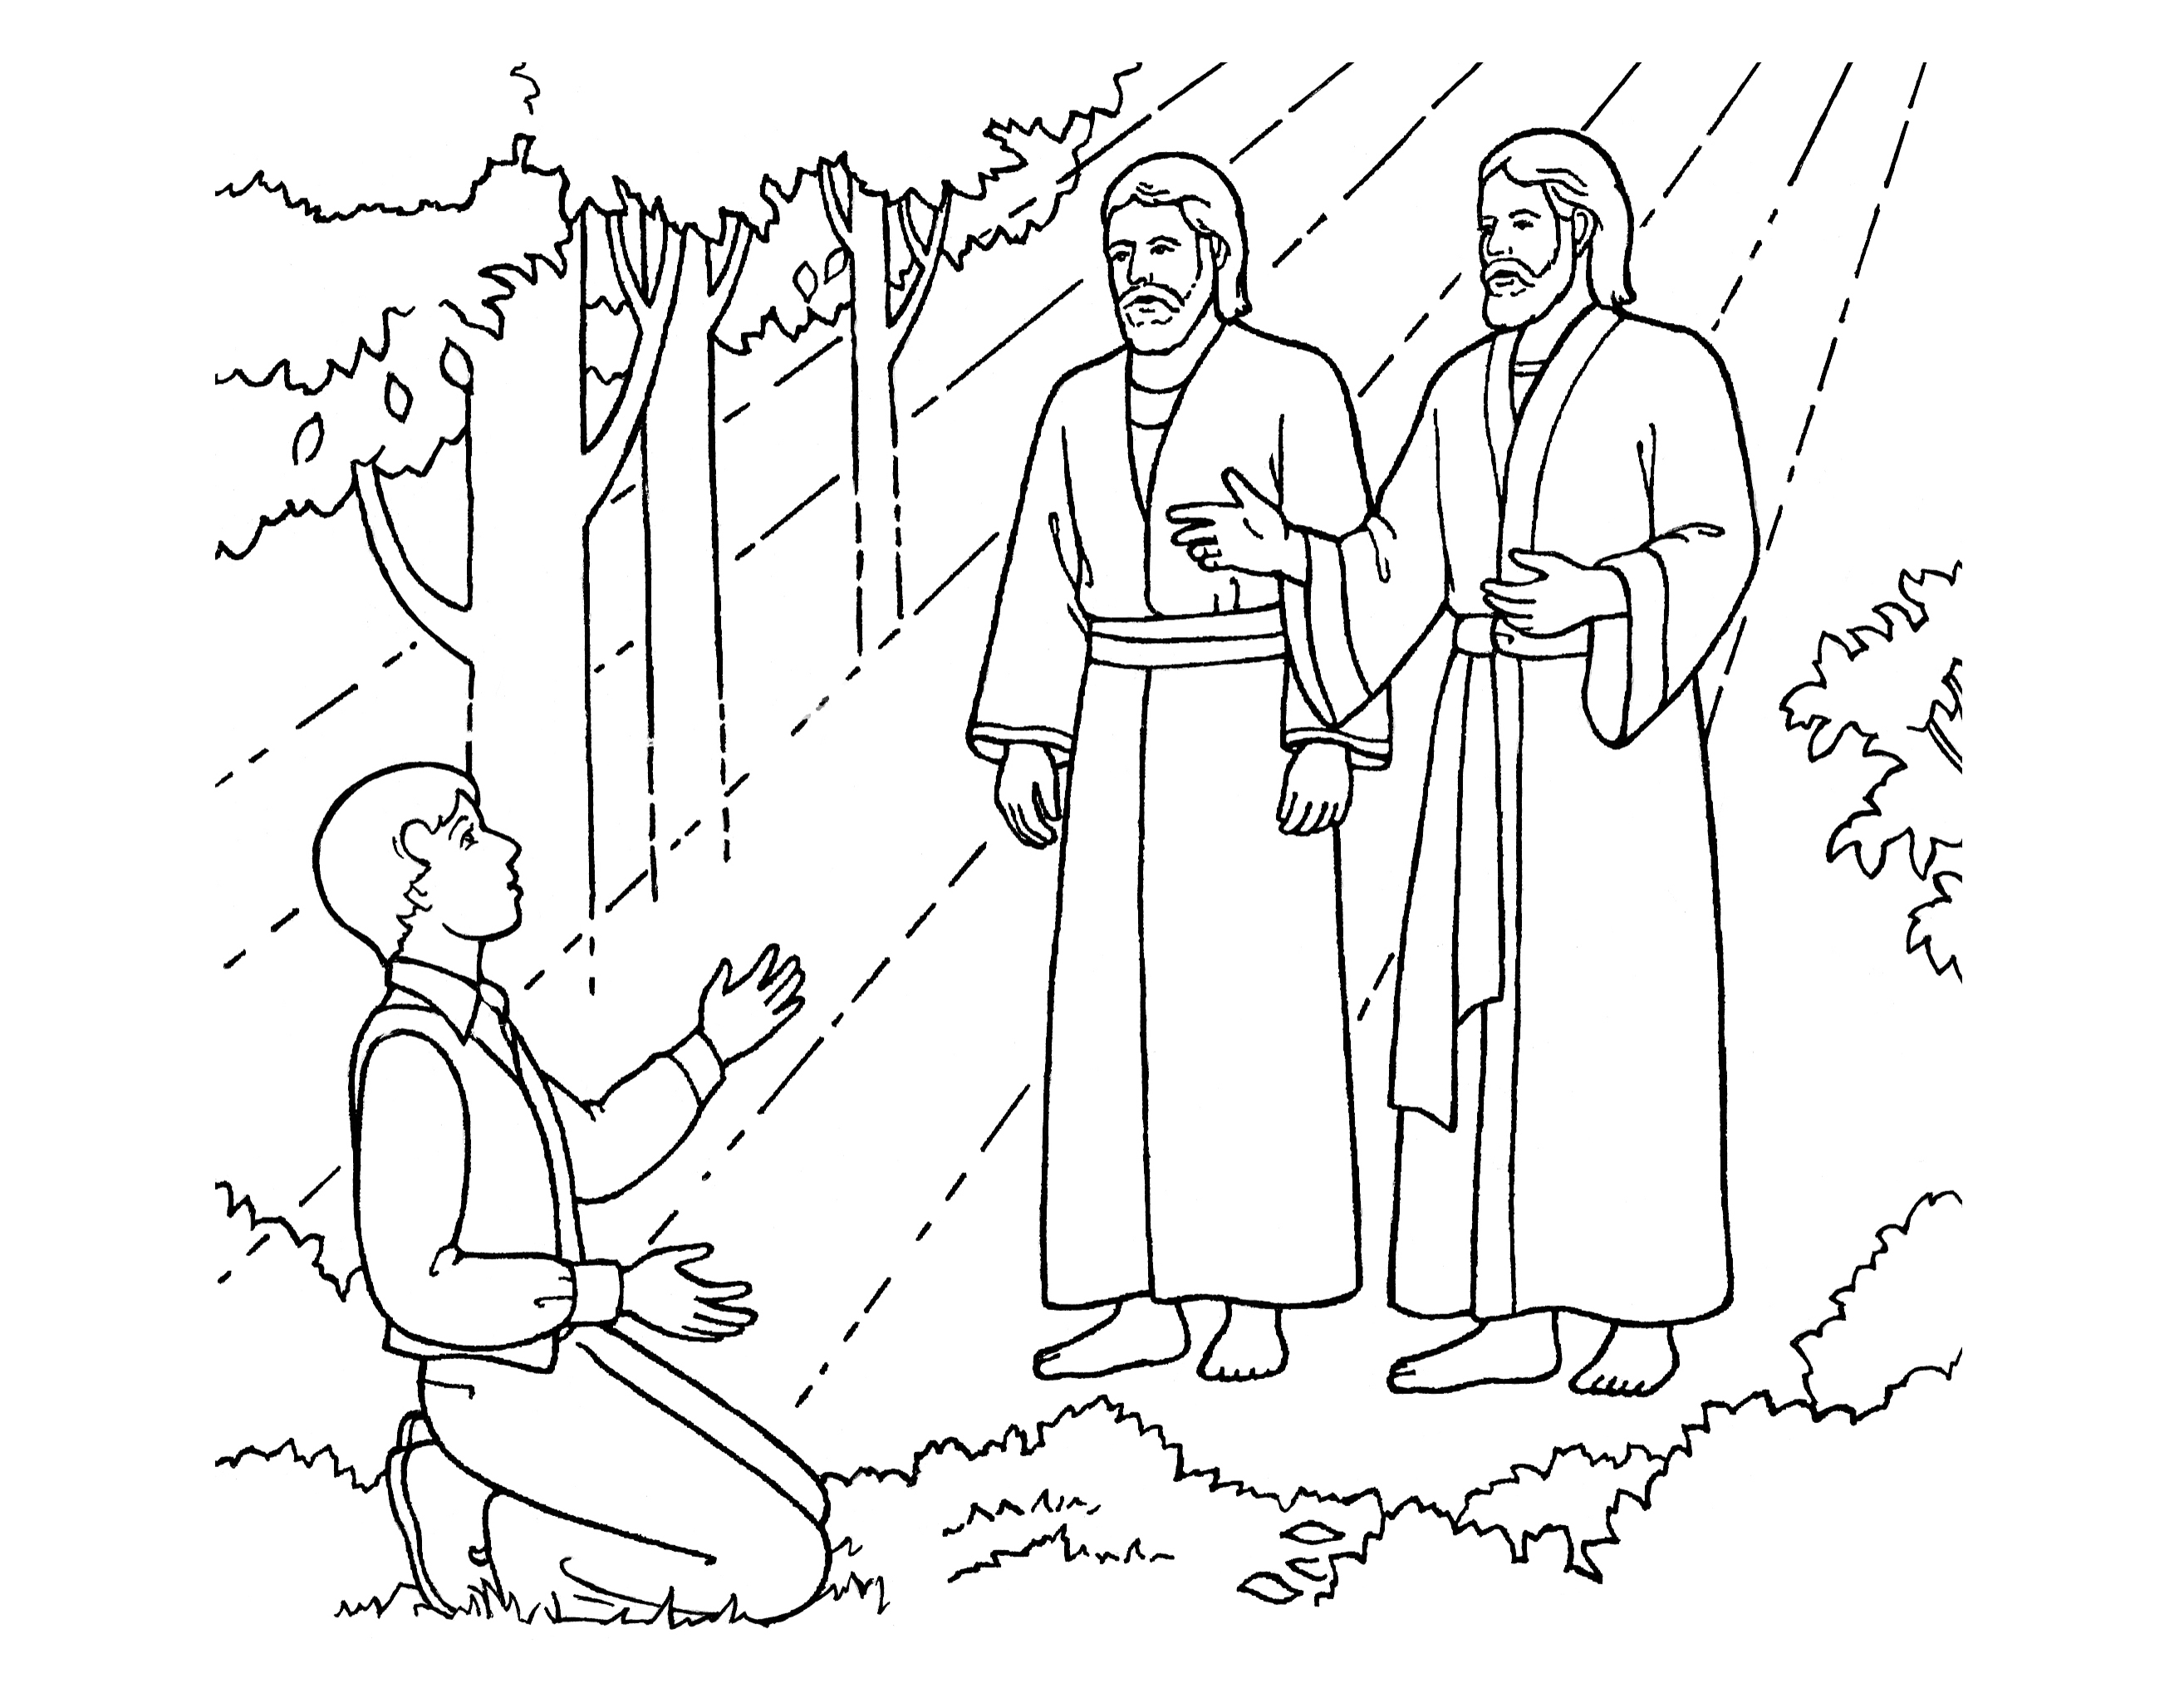 An illustration of Joseph Smith seeing Heavenly Father and Jesus Christ, from the nursery manual Behold Your Little Ones (2008), page 91.